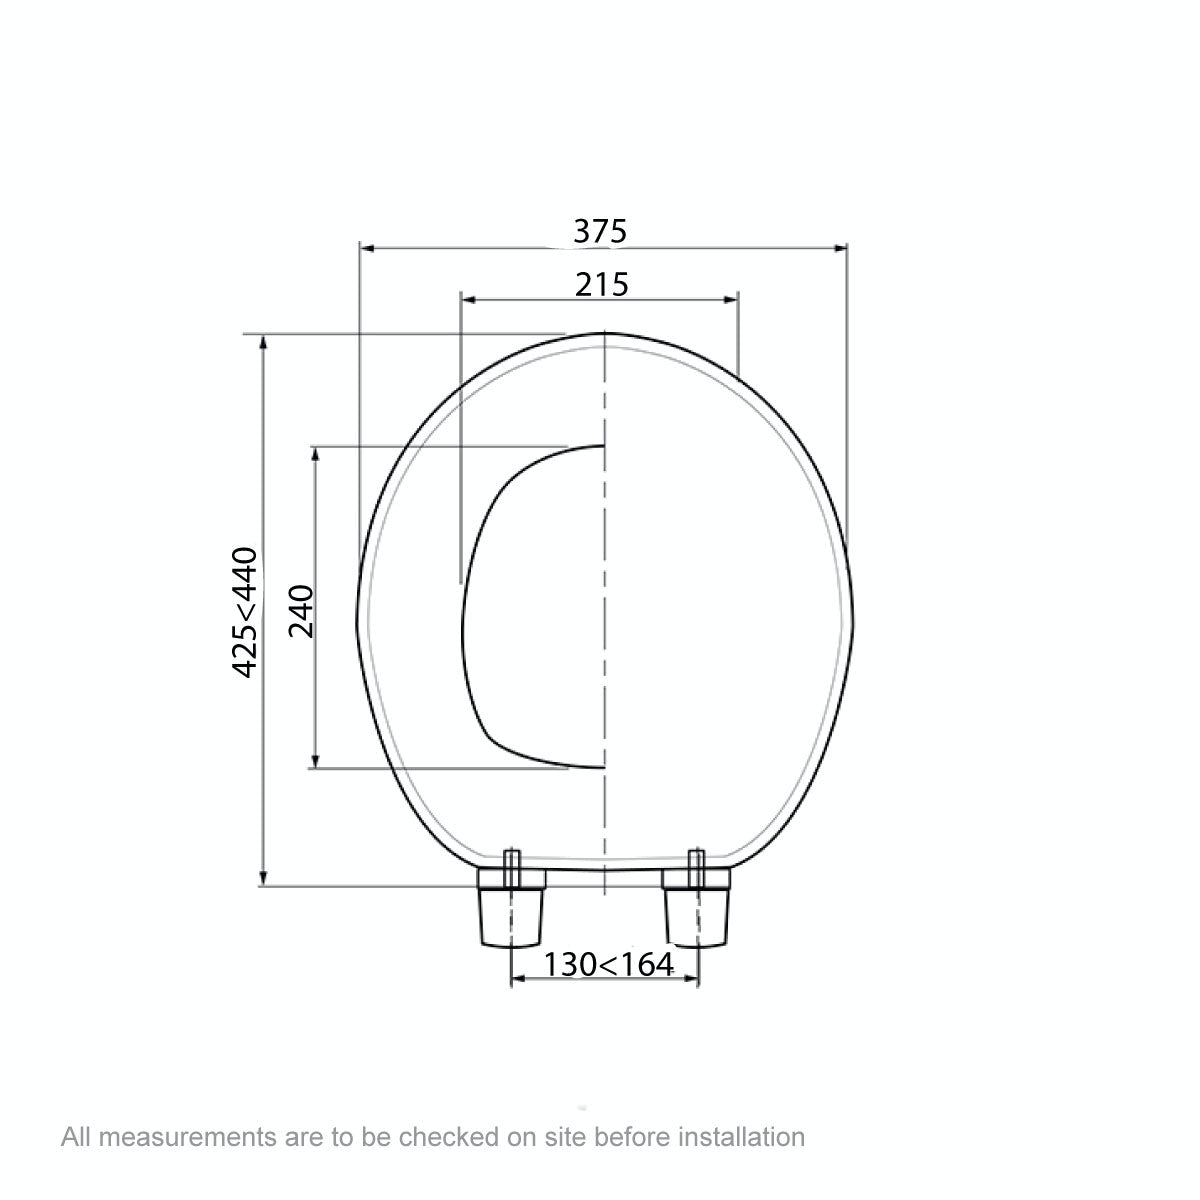 Dimensions for Celmac Wirquin Clarity wooden toilet seat